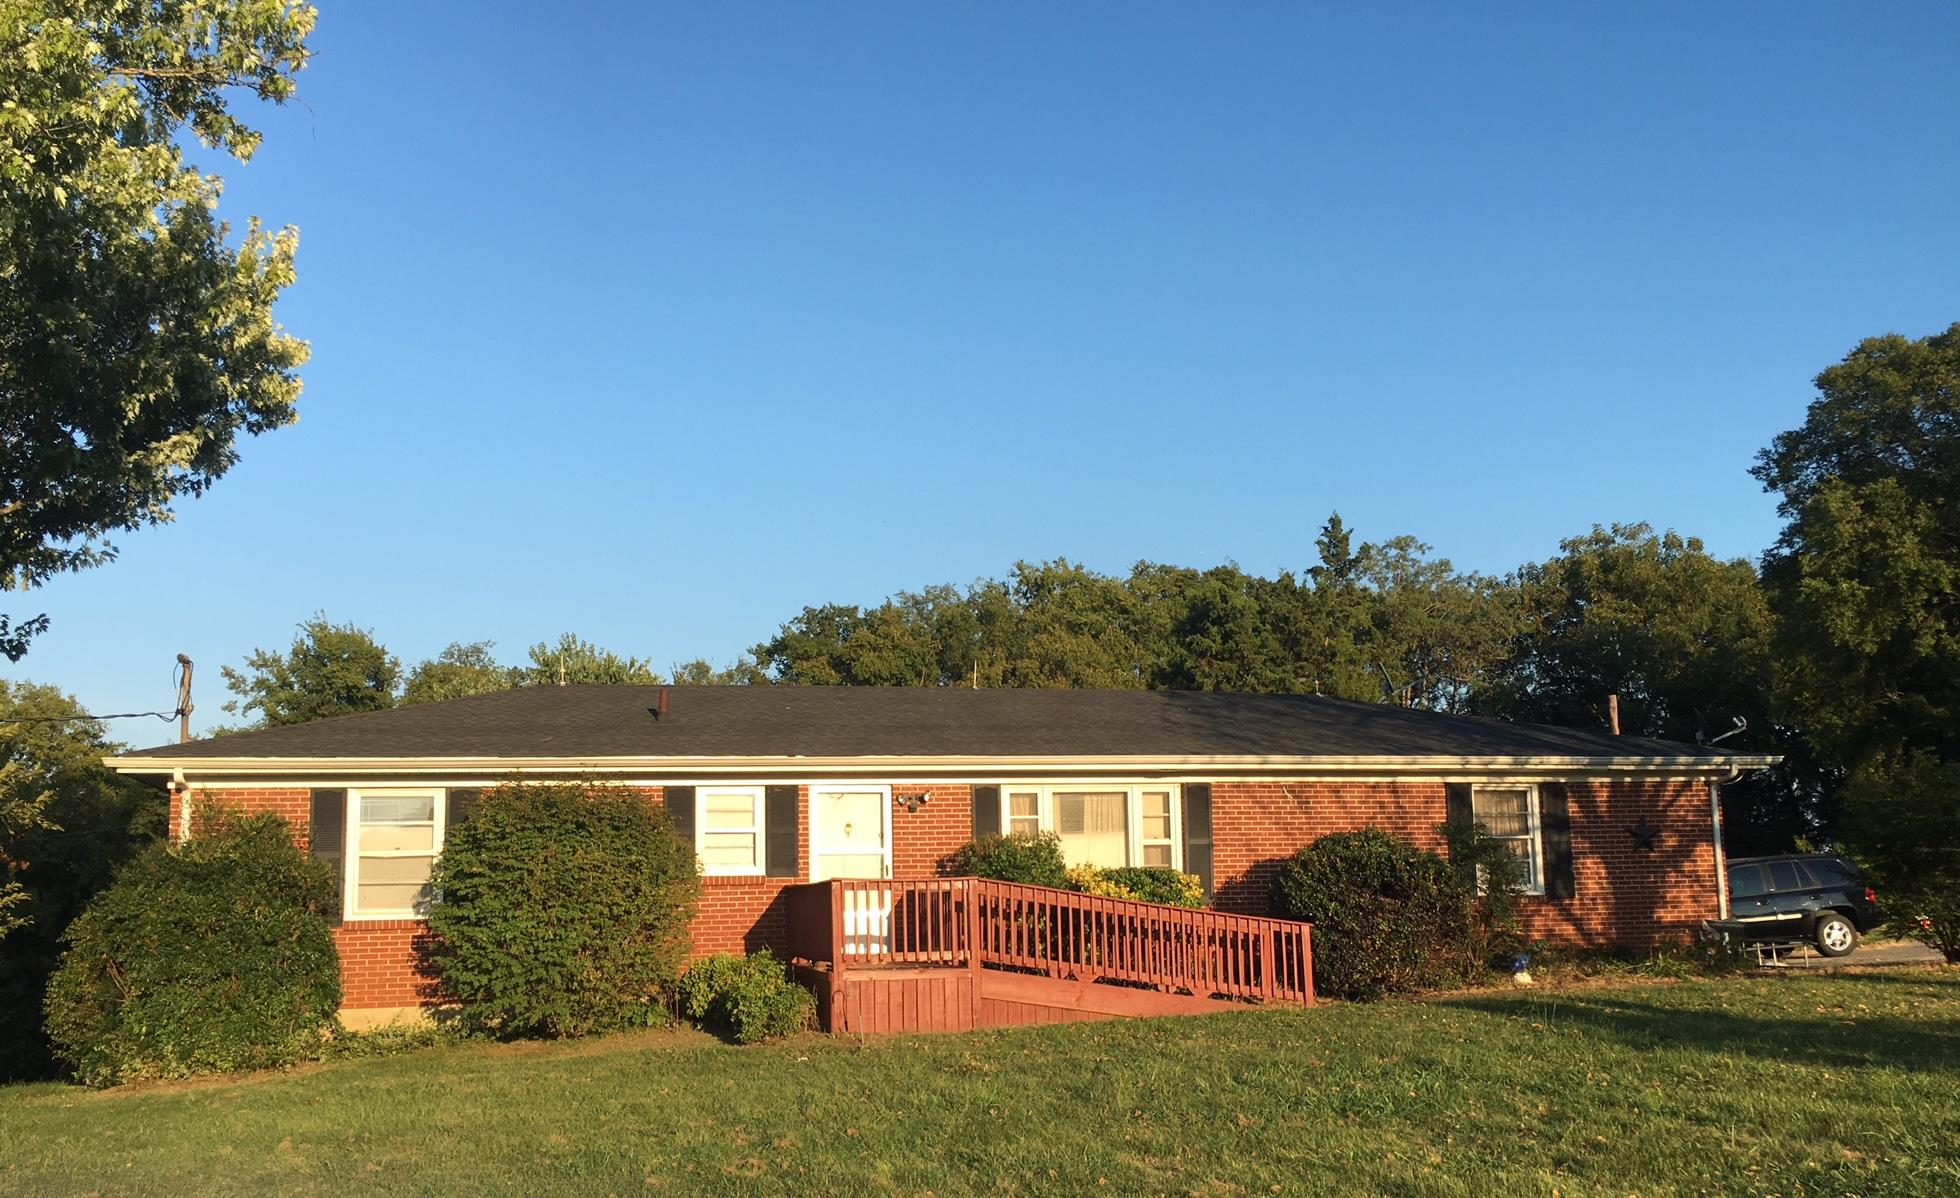 686 N Main St, Eagleville, TN 37060